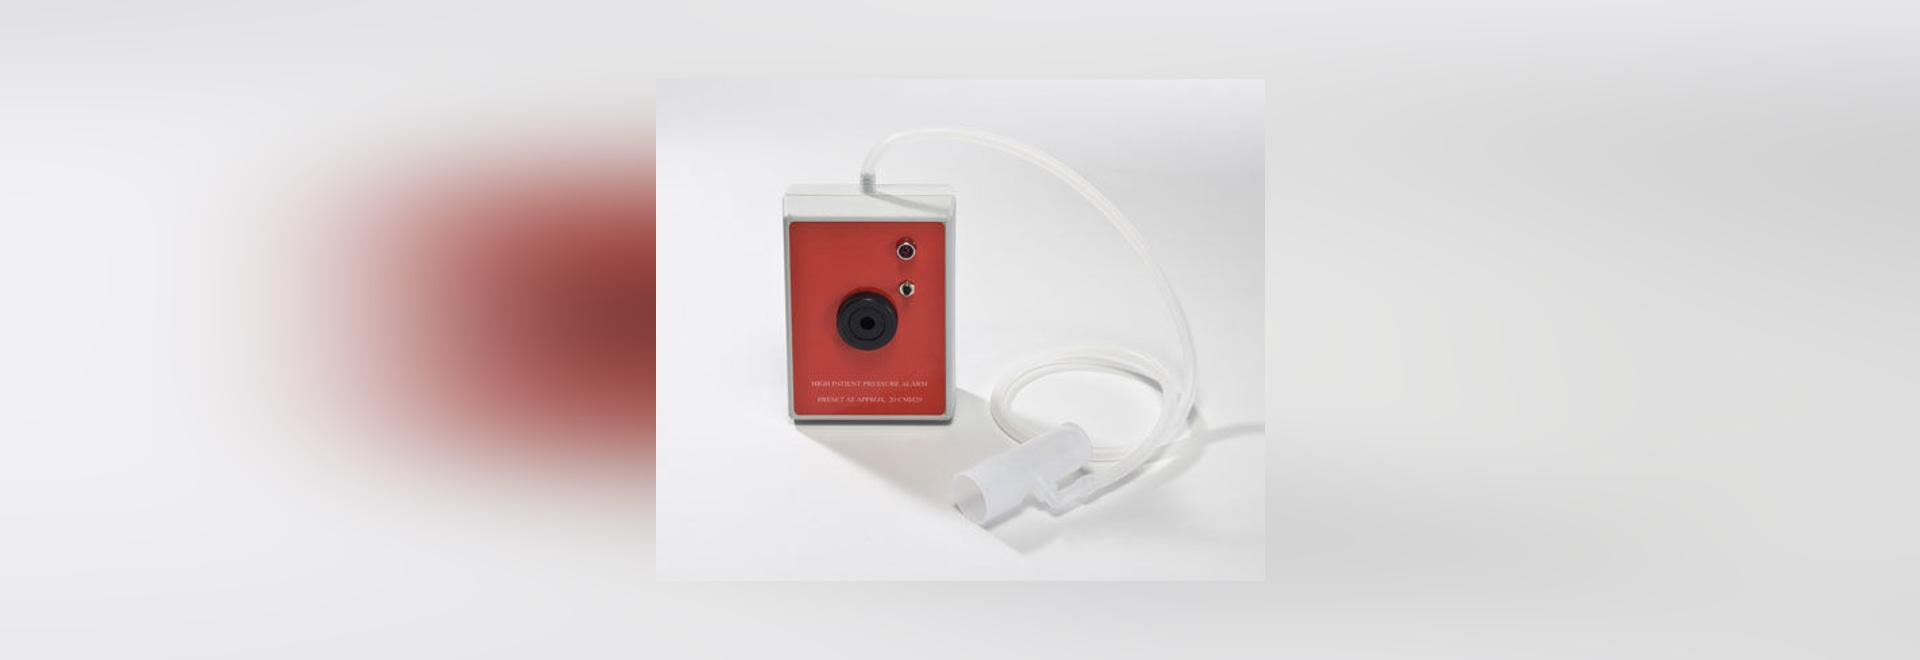 NEW: anesthetic gas alert system by Smiths Medical Surgivet